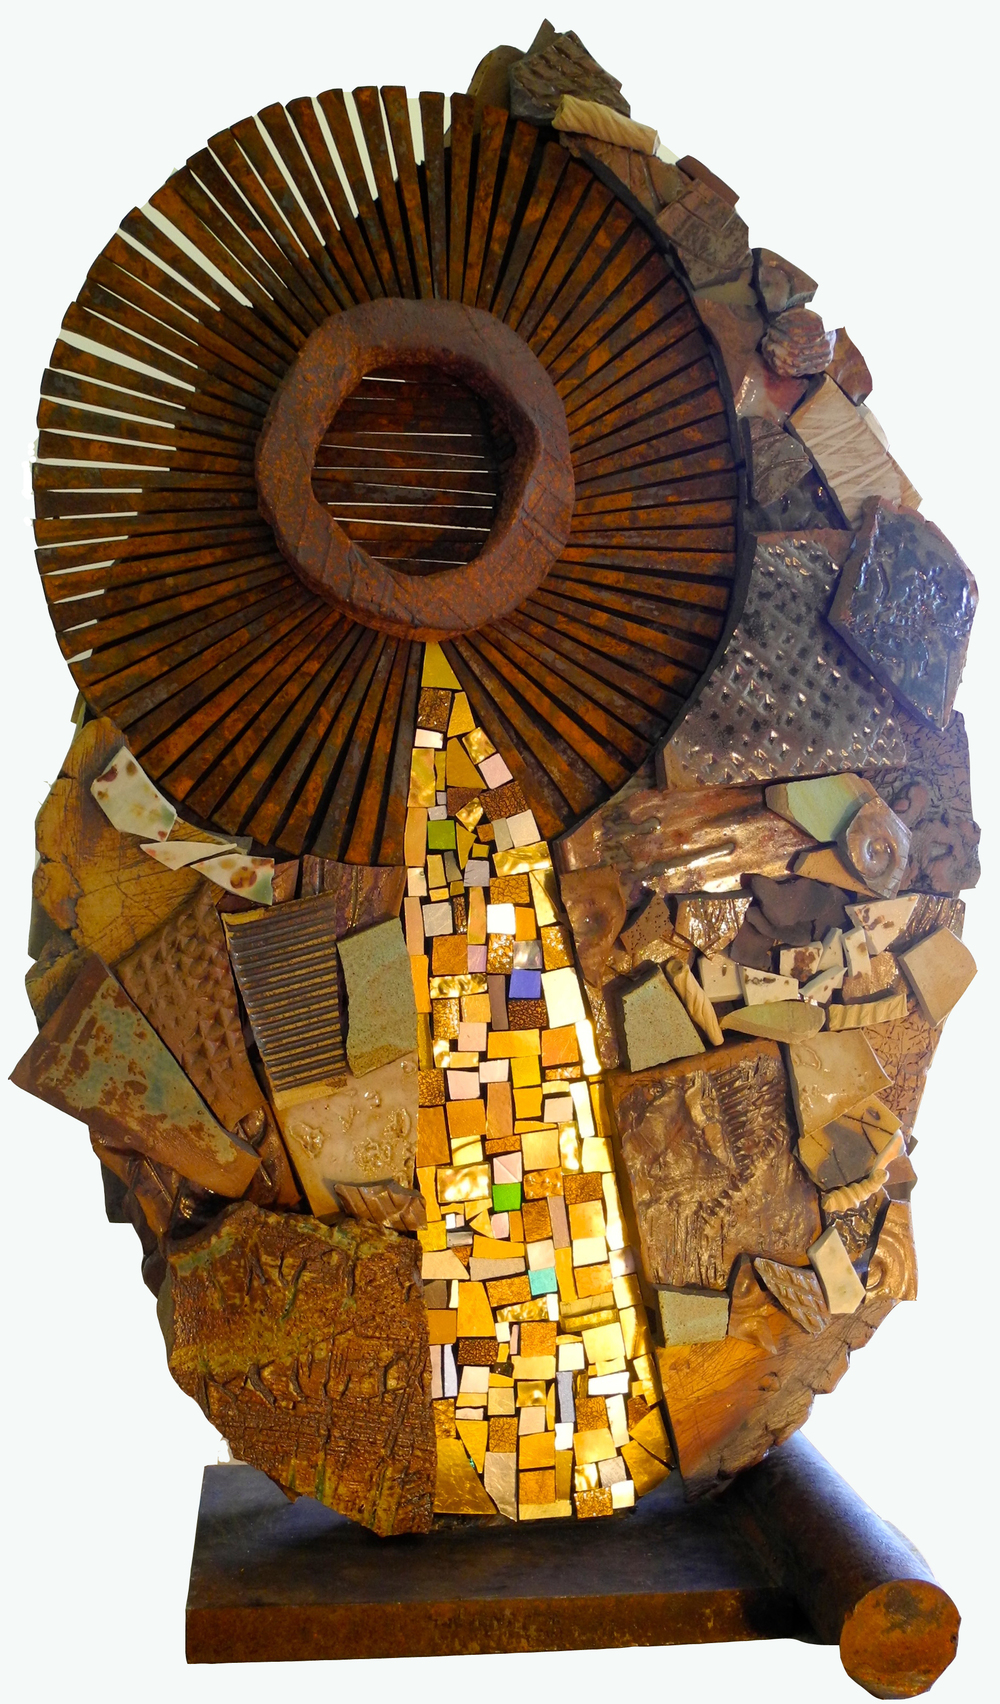 Conjure   High Fire Ceramic Mixed Media Mosaic Sculpture by Shelita Birchett Benash